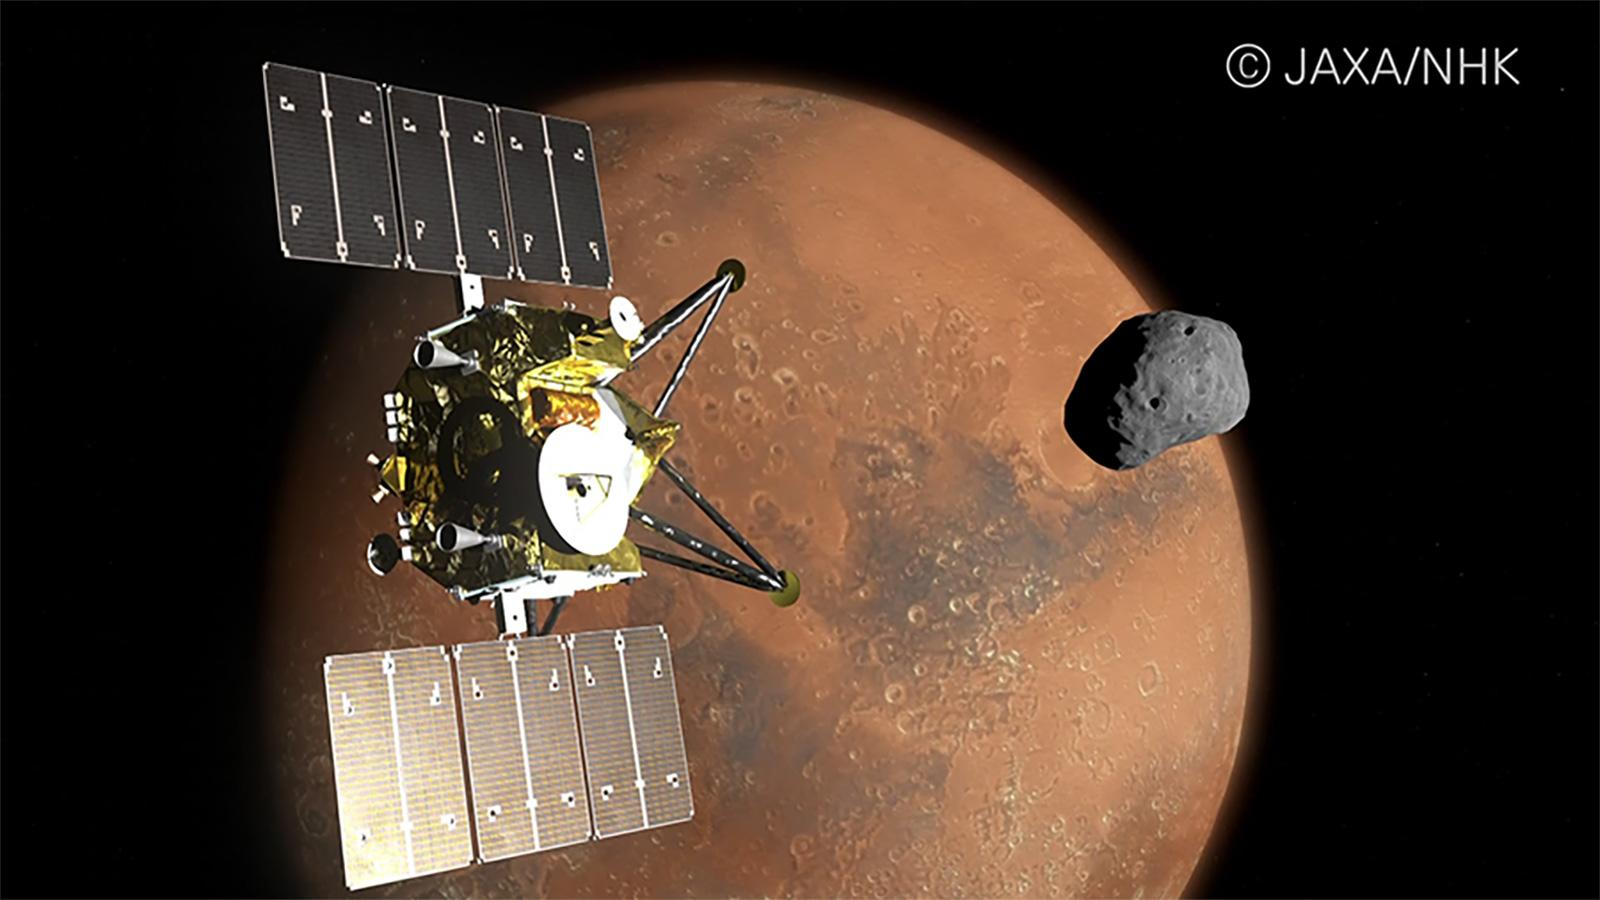 Japan will send an 8K camera to Mars and its moons | Engadget